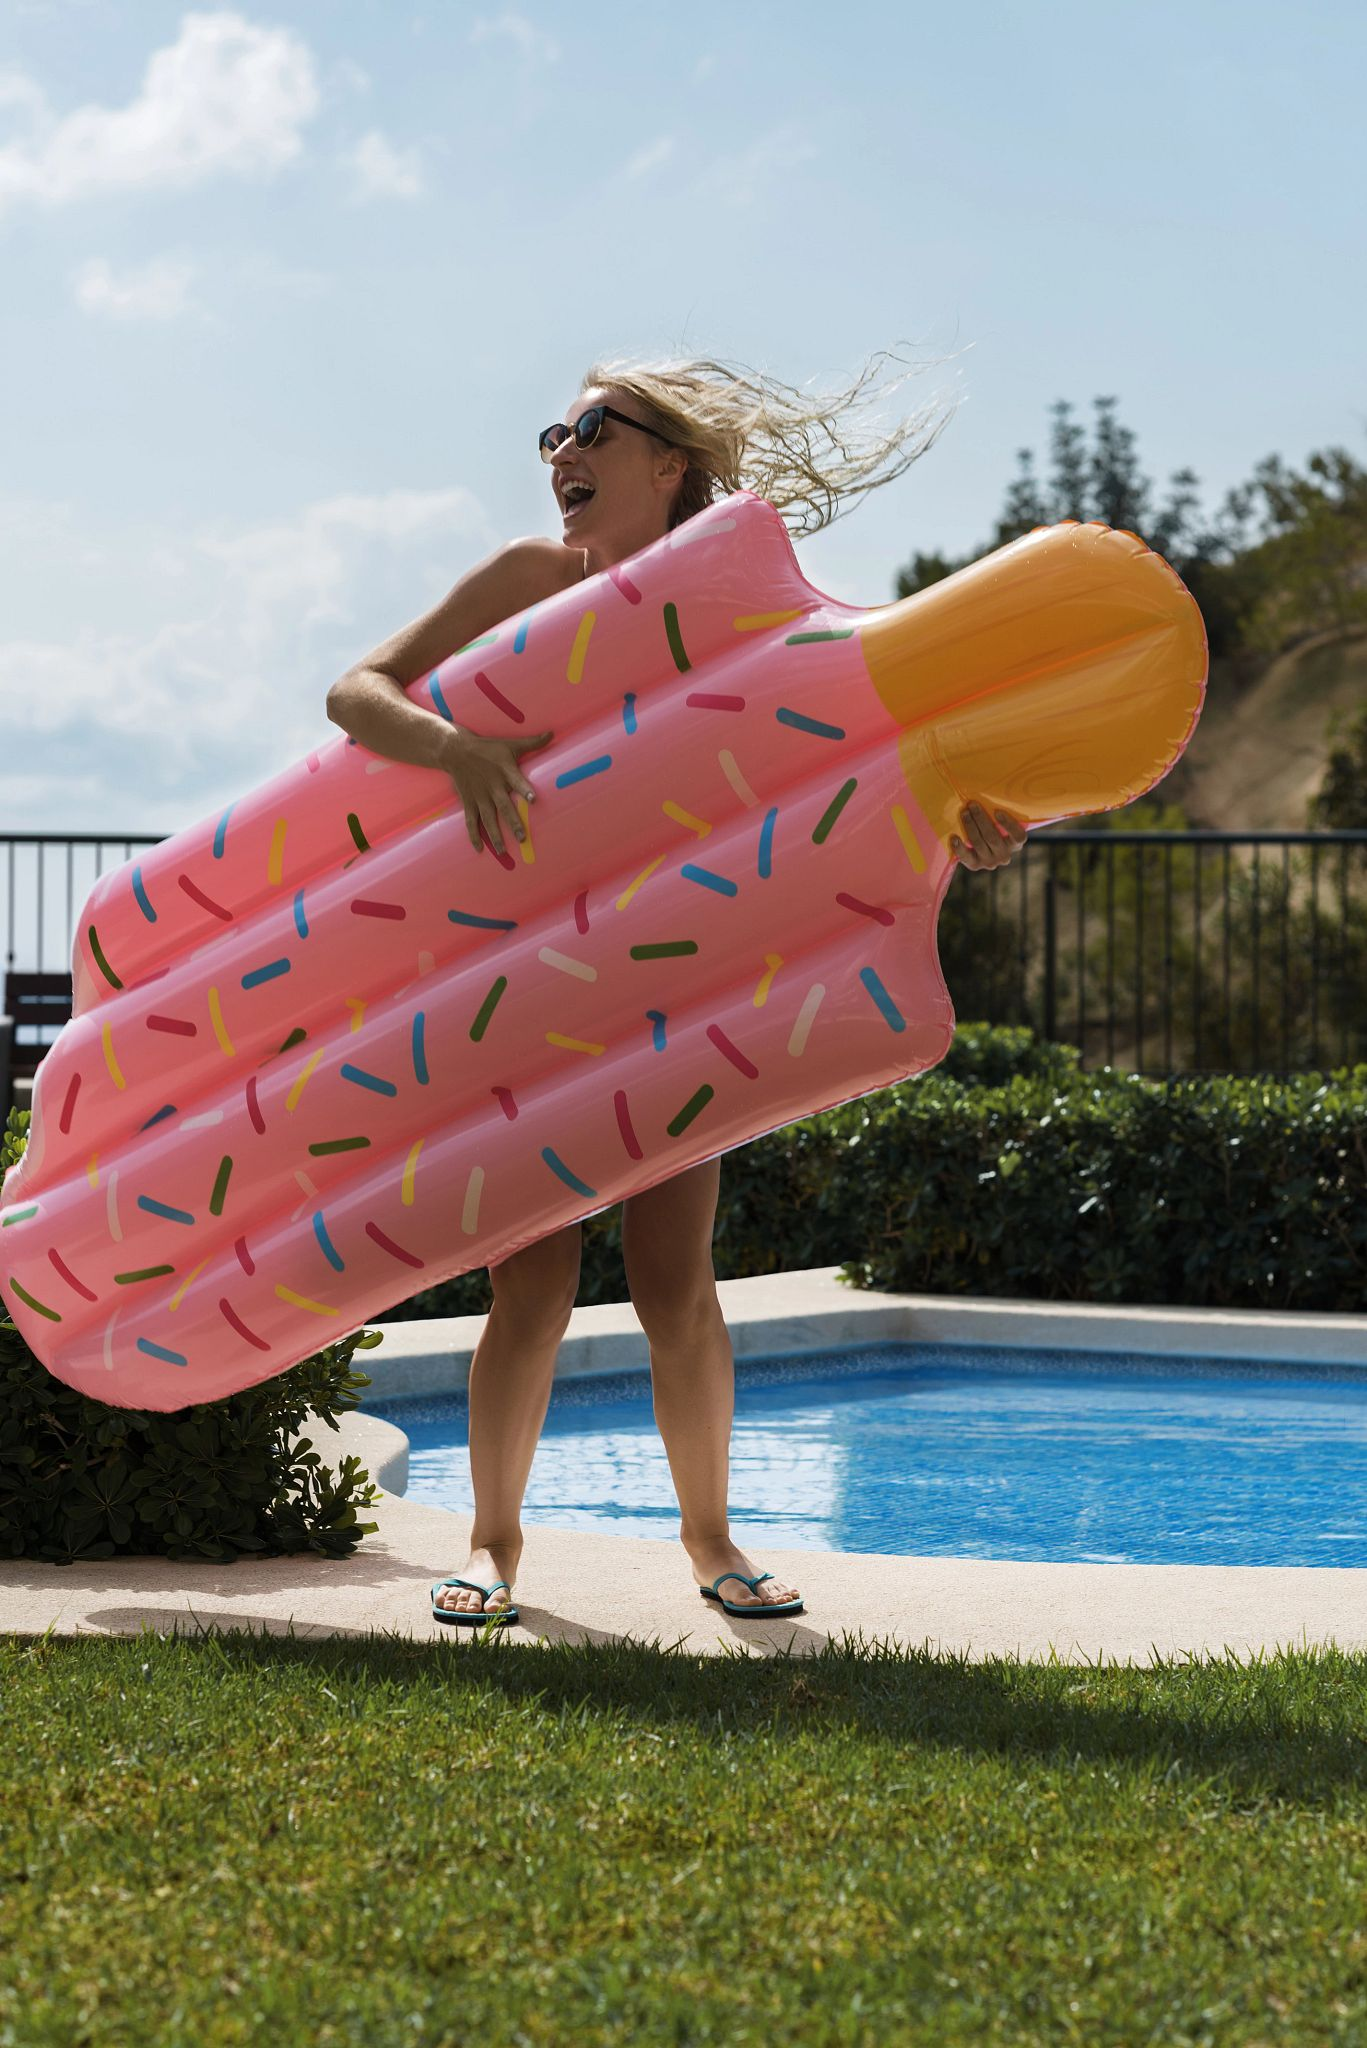 si-woman-with-popsicle-float-stocksy_txp3bad74bechk200_originaldelivery_1485342-r1.jpg